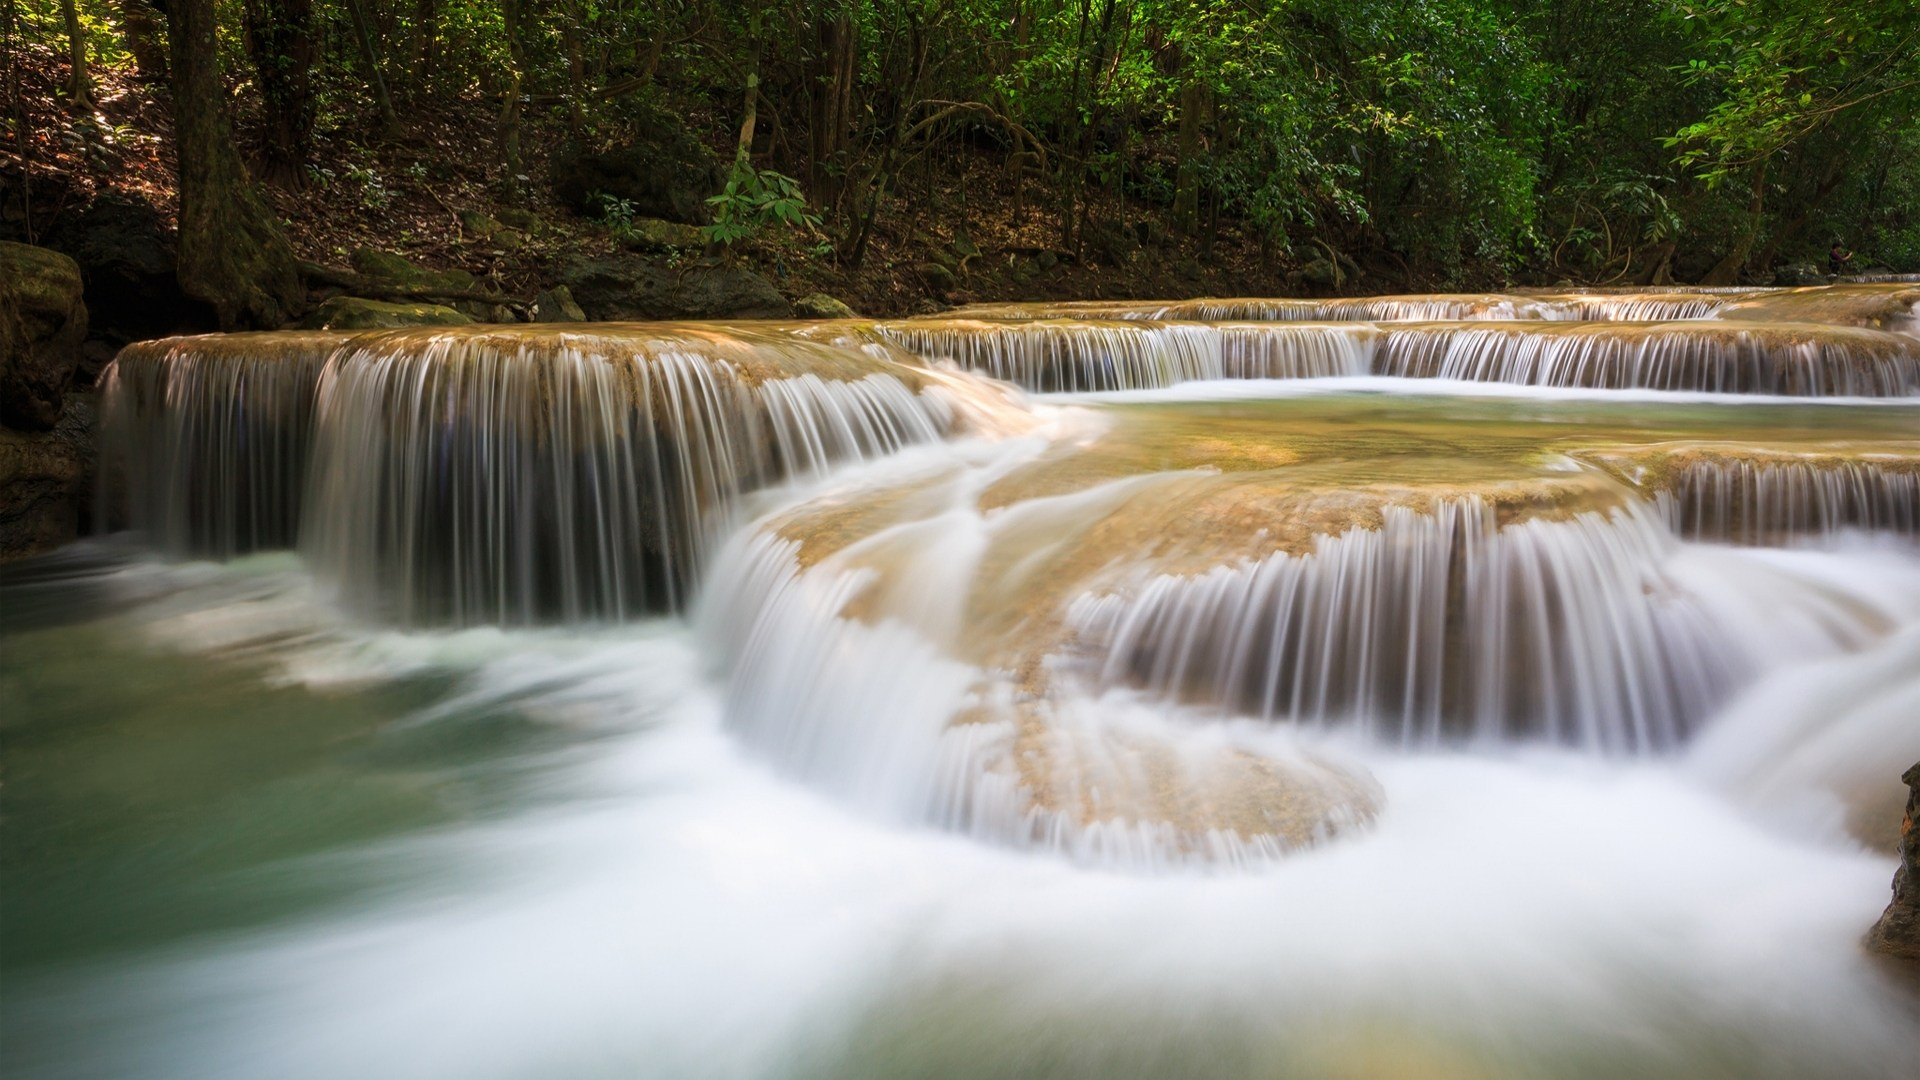 nature wallpaper full hd,water resources,body of water,waterfall,natural landscape,nature